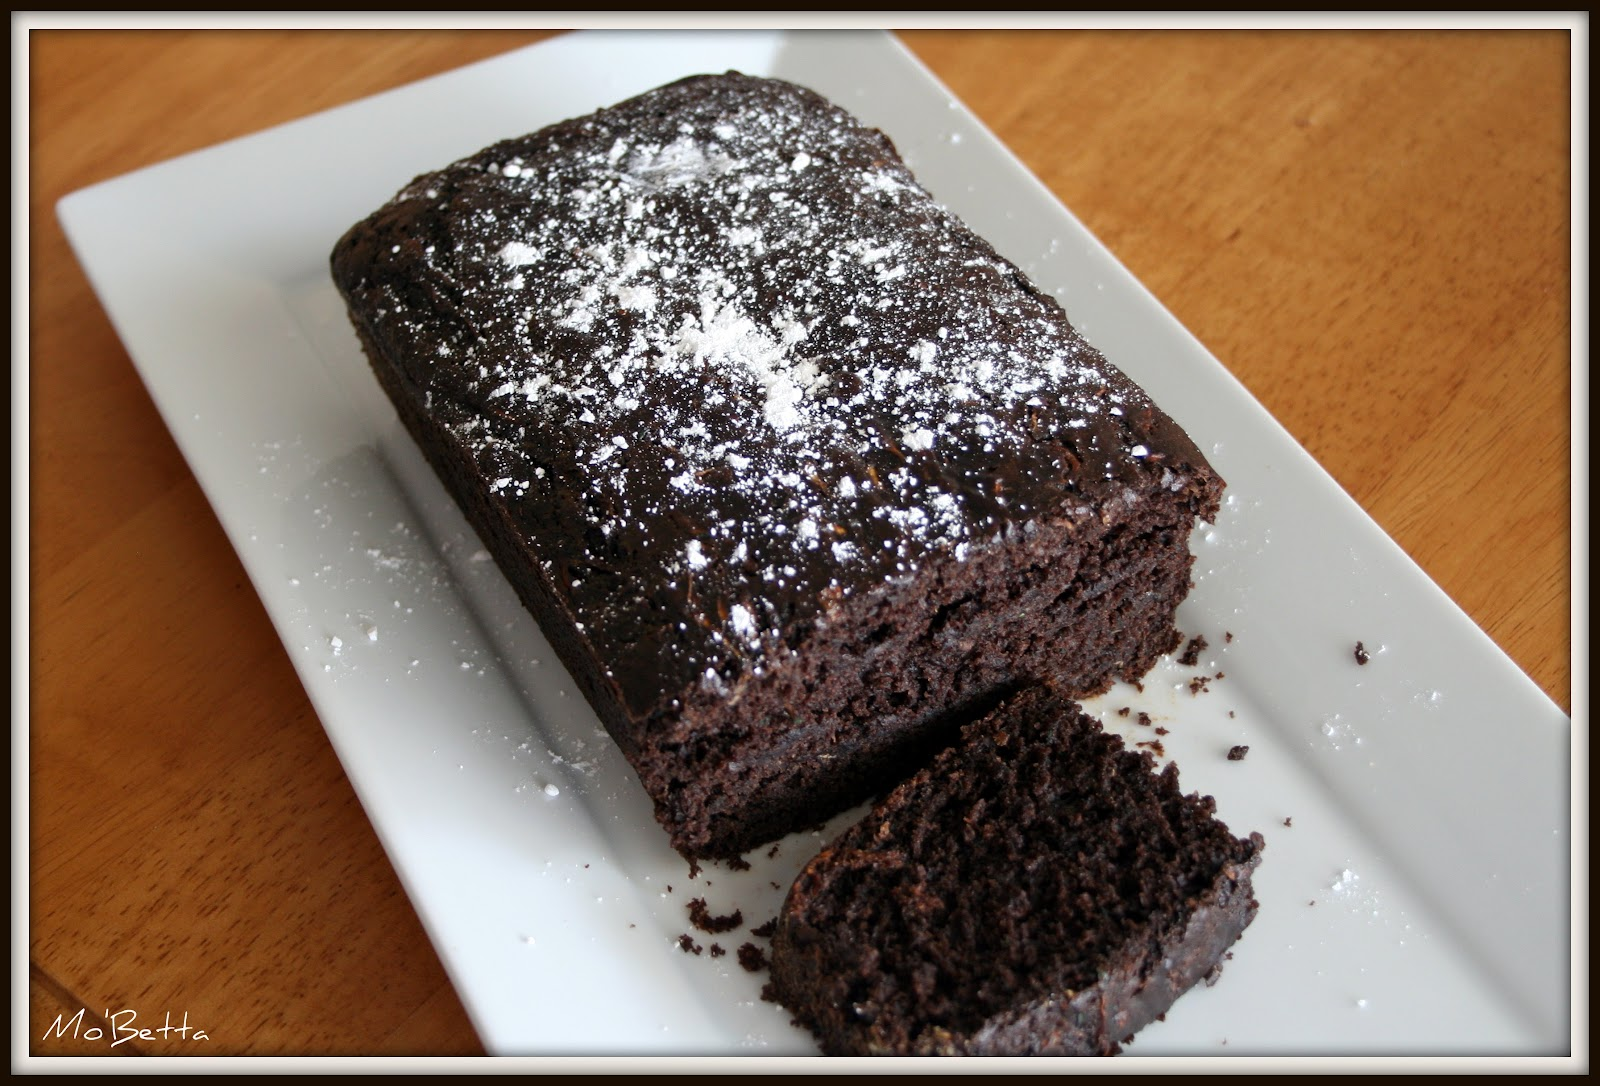 Makin' it Mo' Betta: Dark Chocolate Zucchini Bread